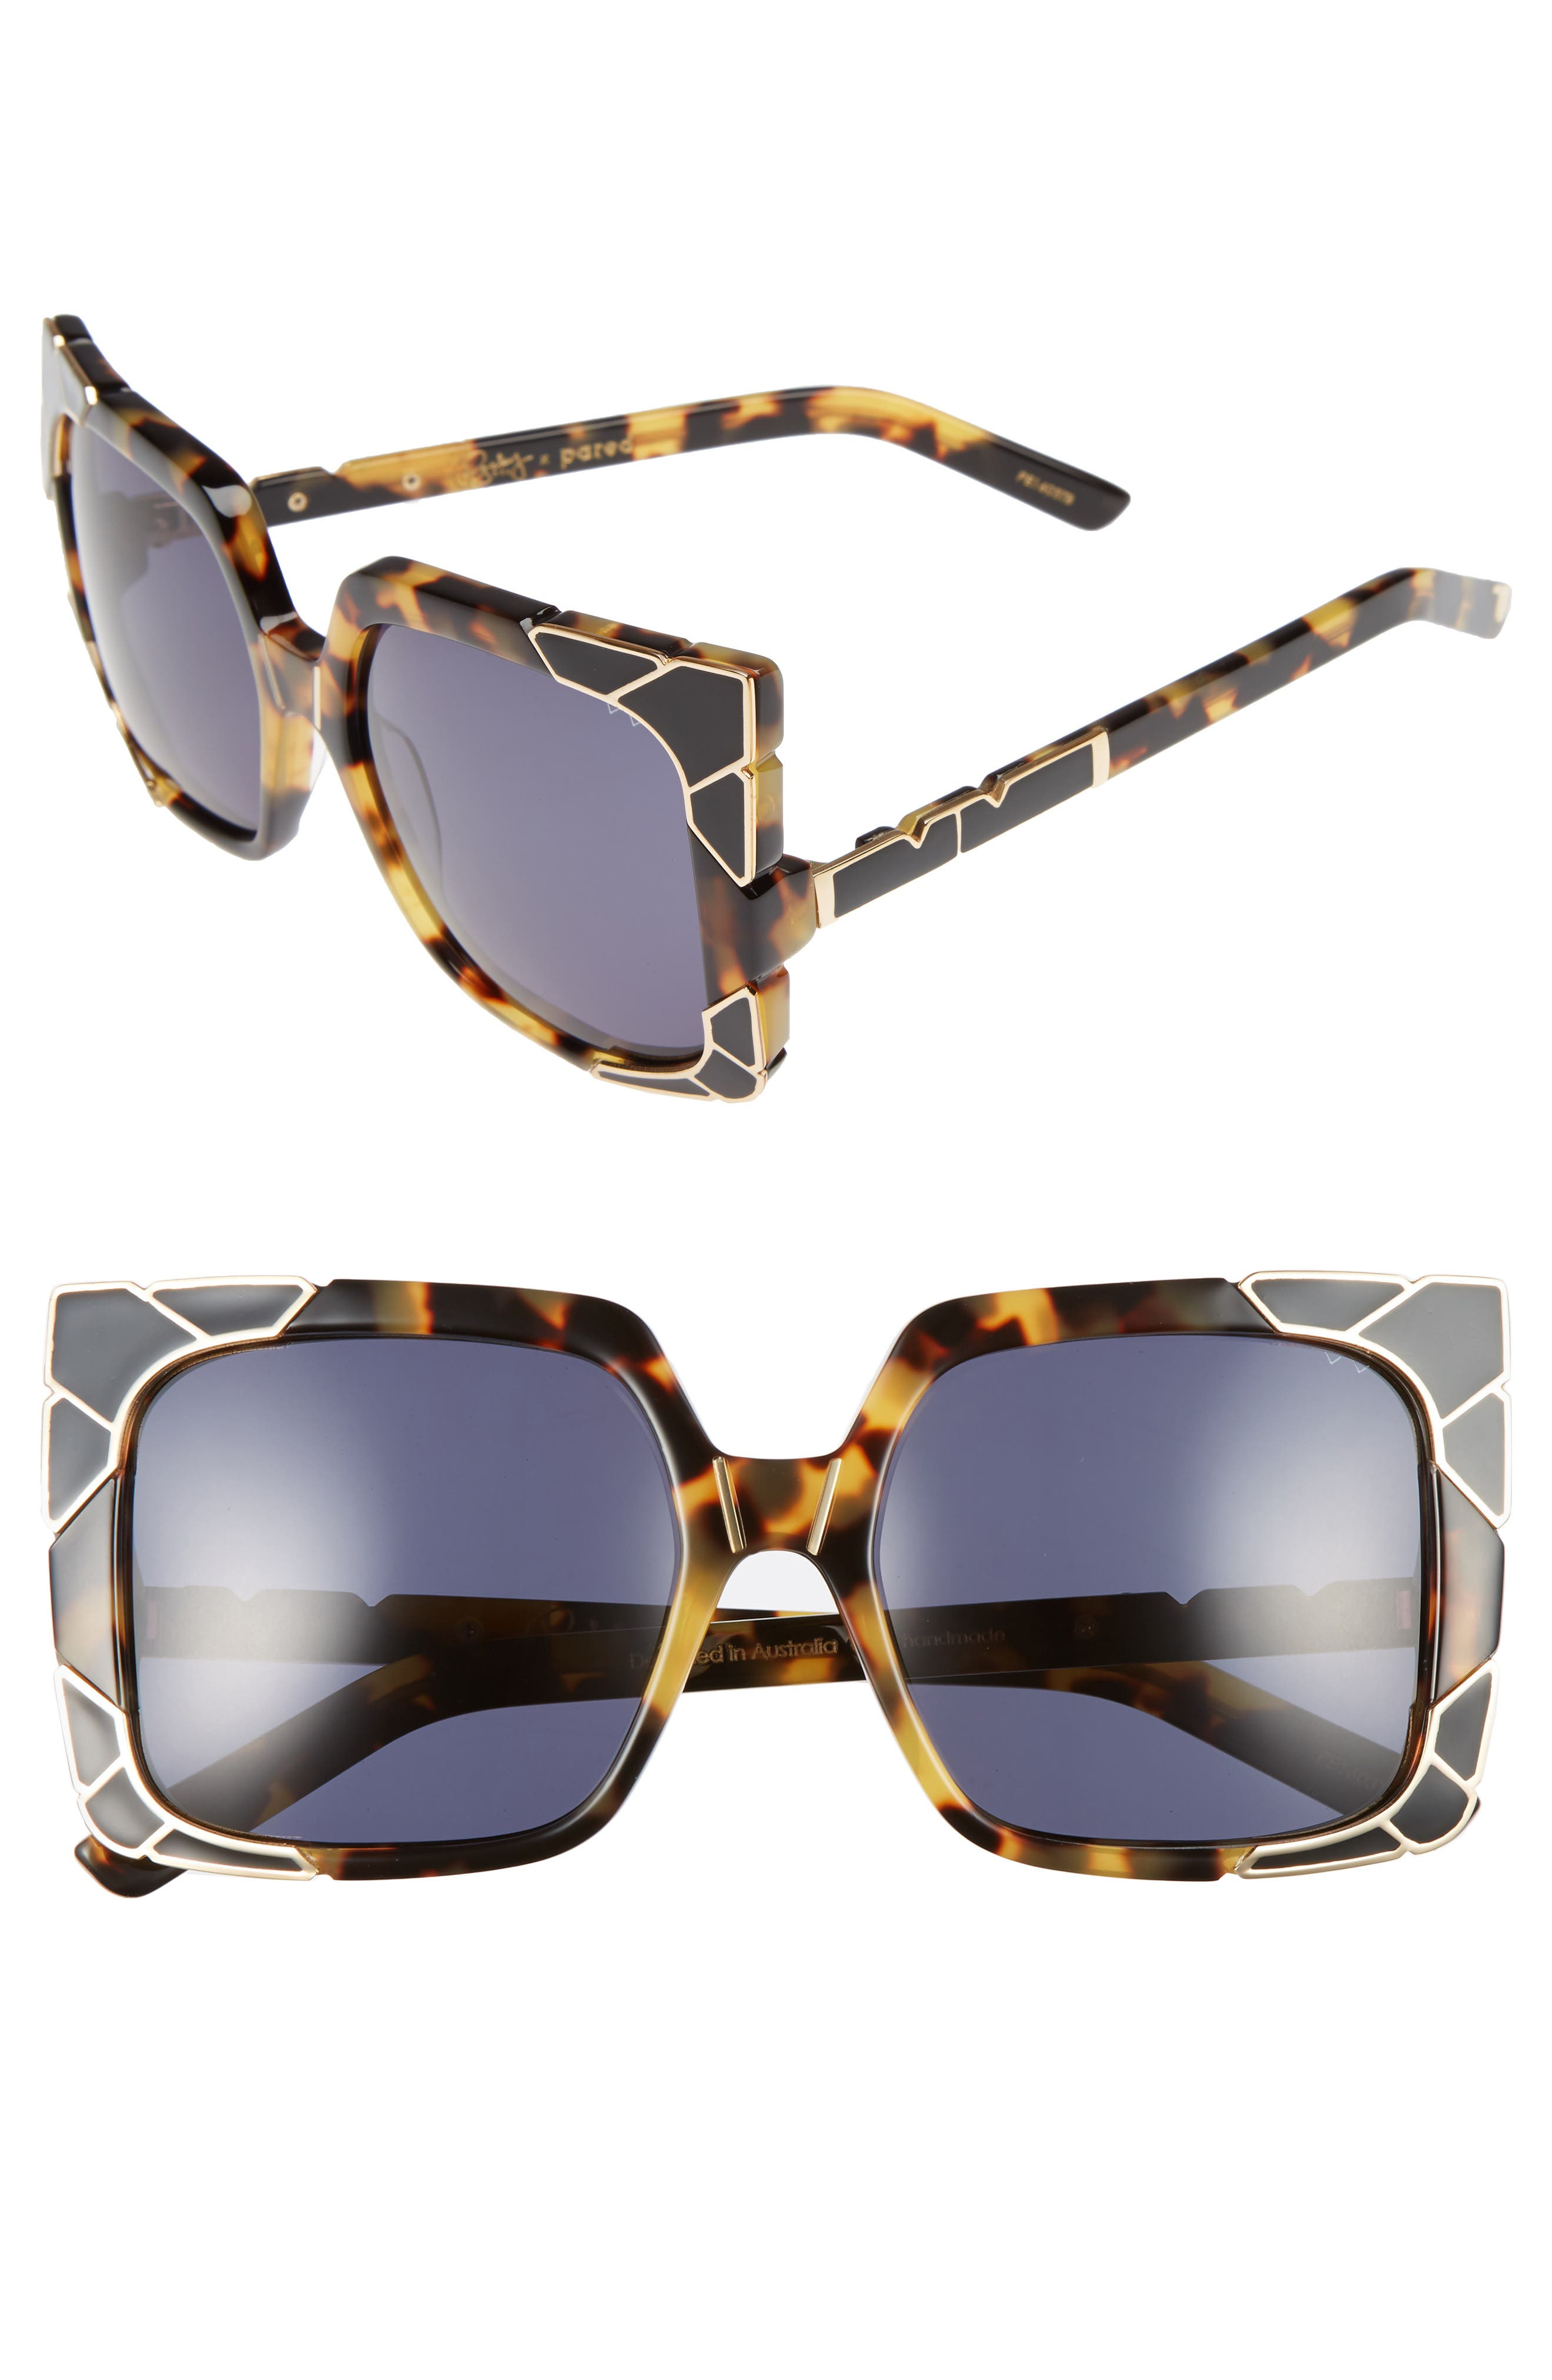 Main Image - Pared Sun & Shade 55mm Square Retro Sunglasses